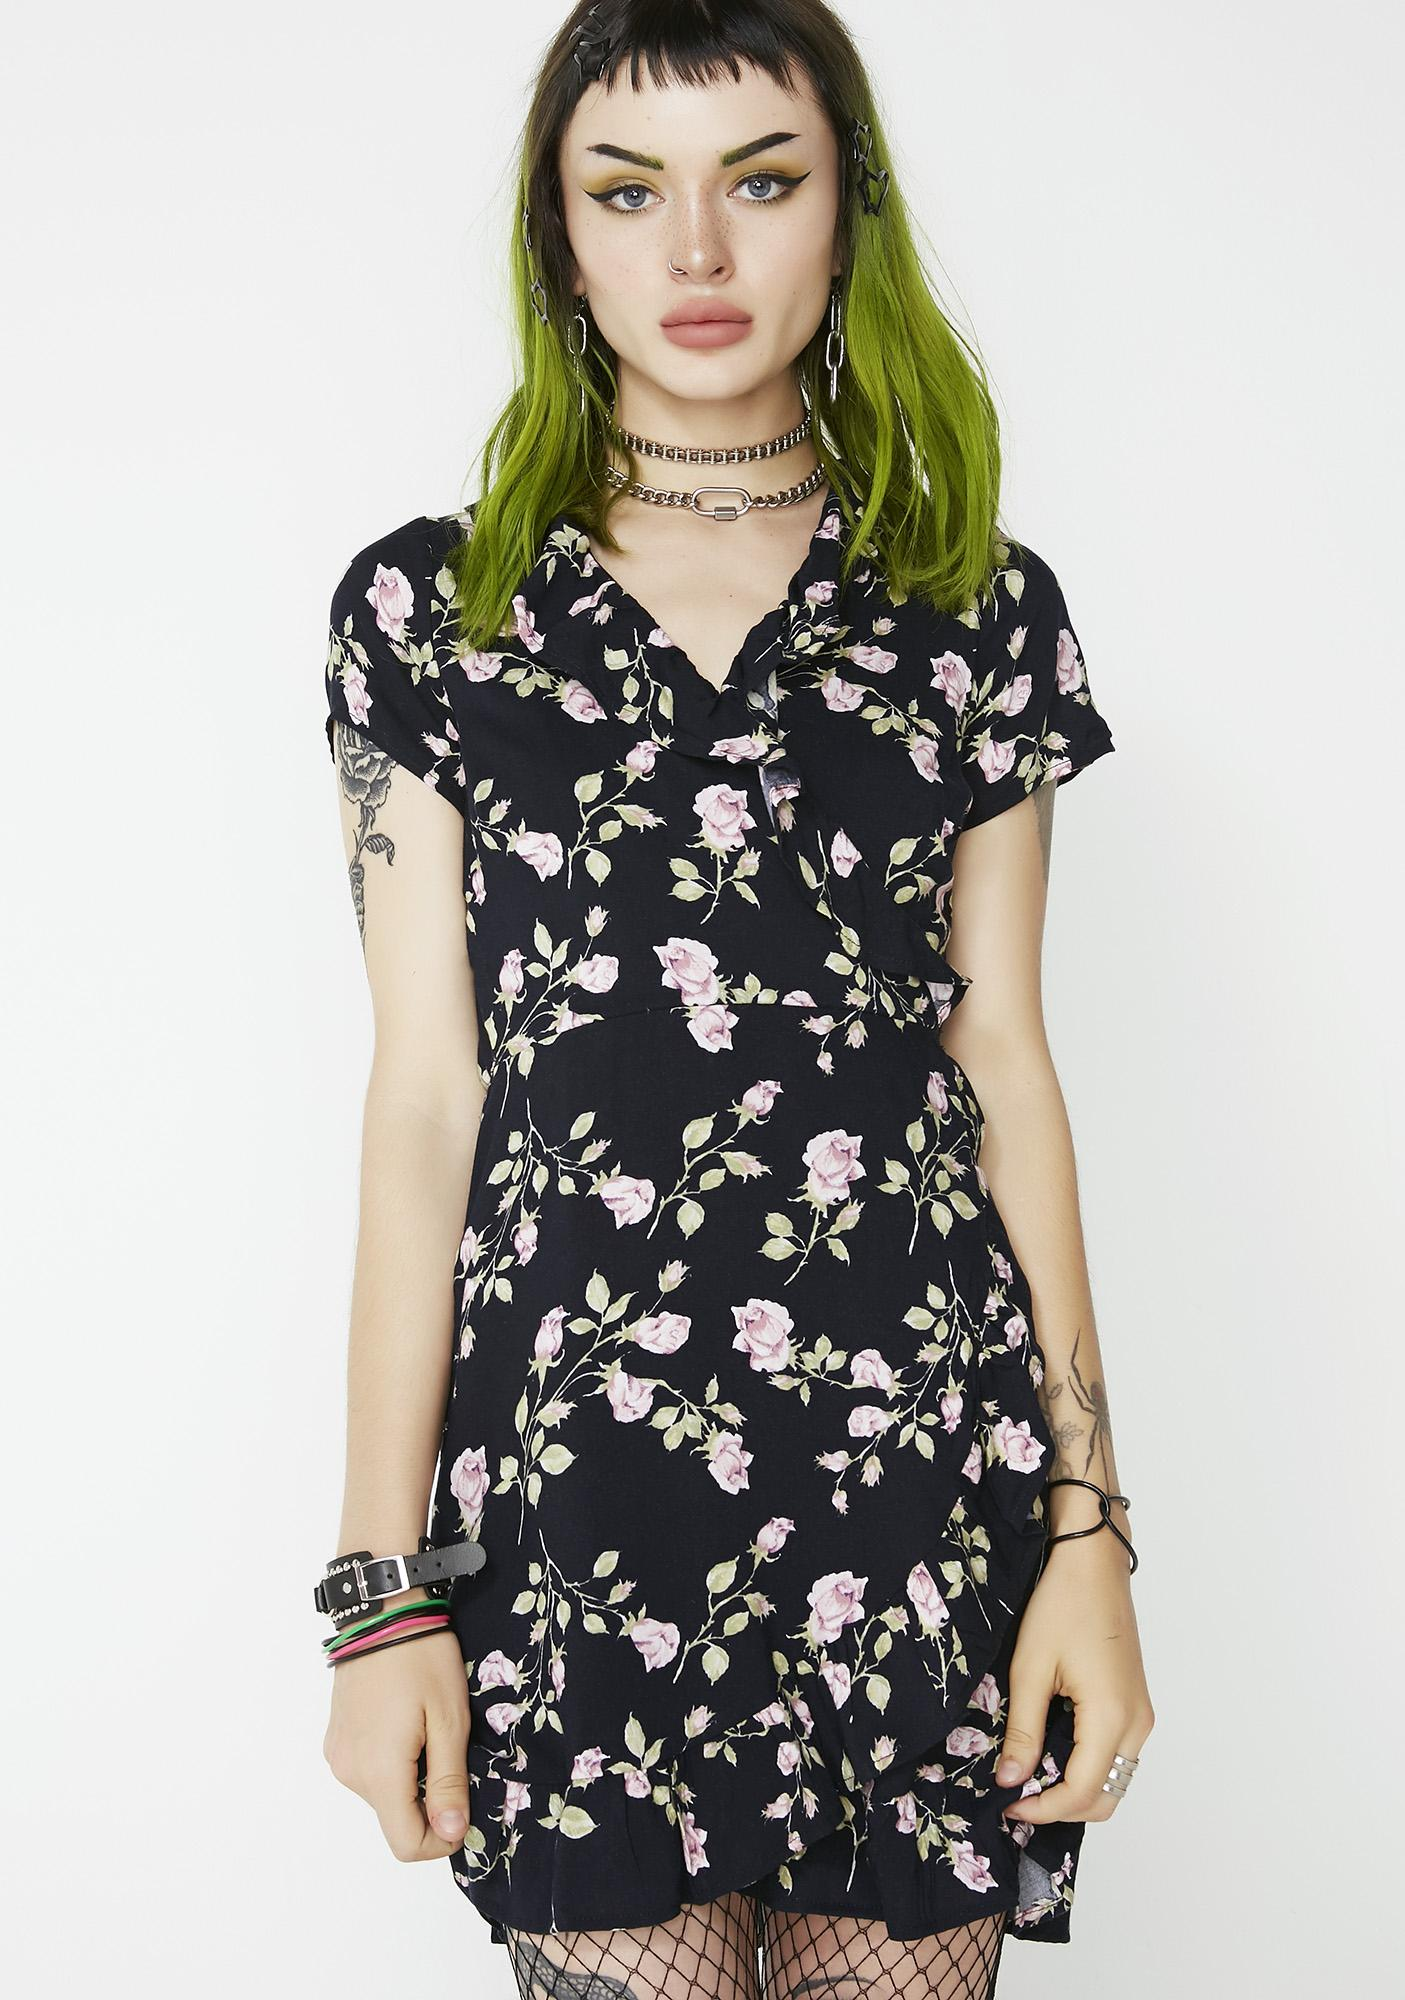 For Keeps Floral Dress by Wild Honey